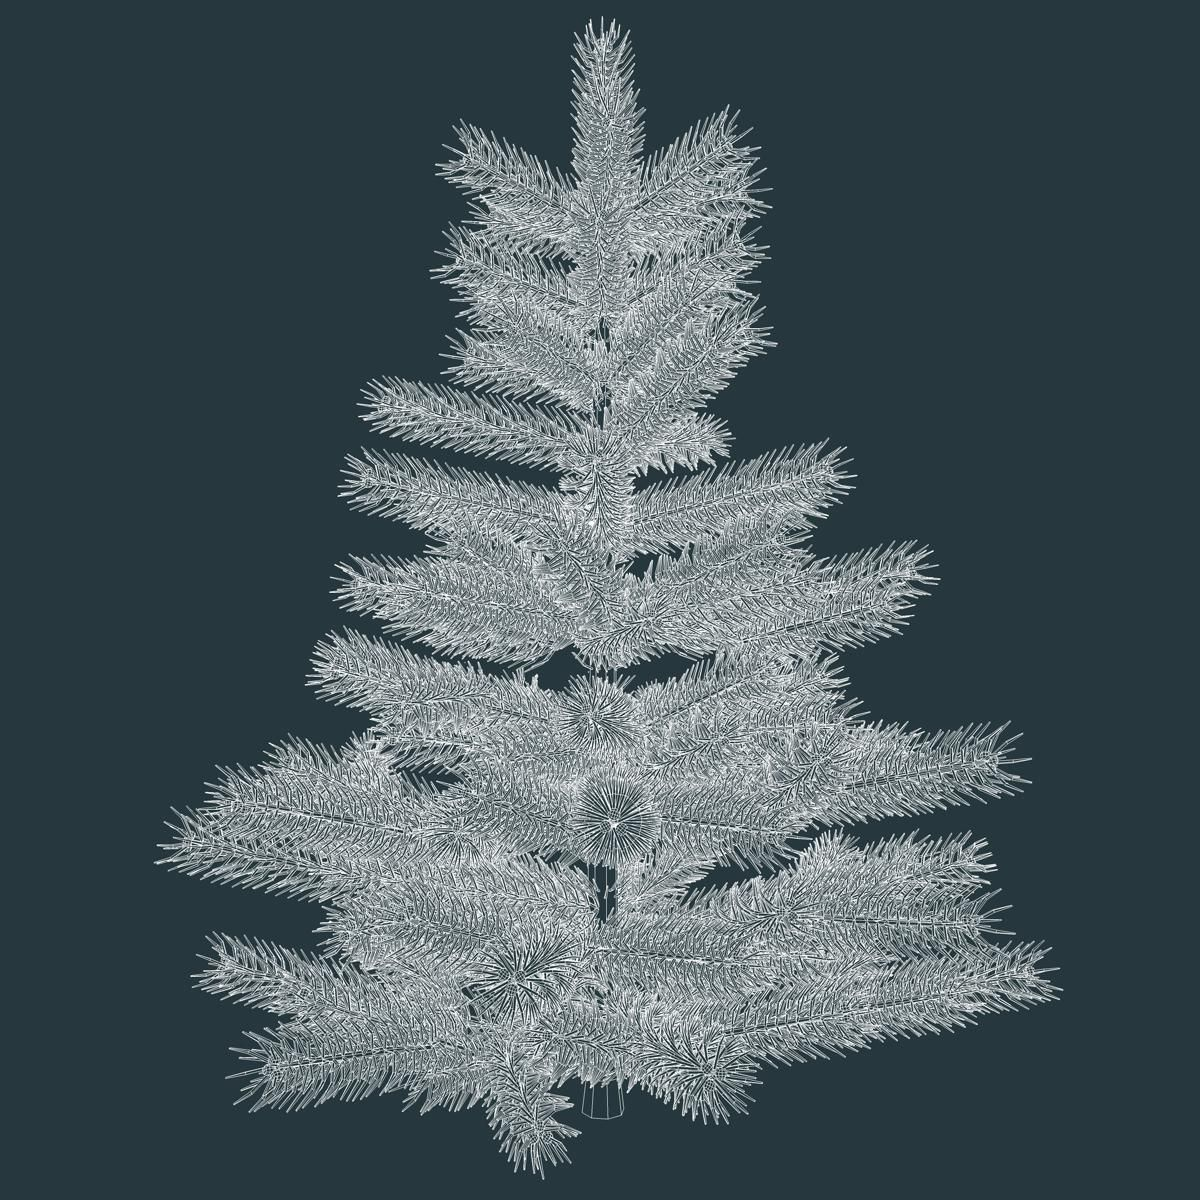 Fir Tree 3d Model Ad Fir Tree Model Fir Tree Tree 3d Model